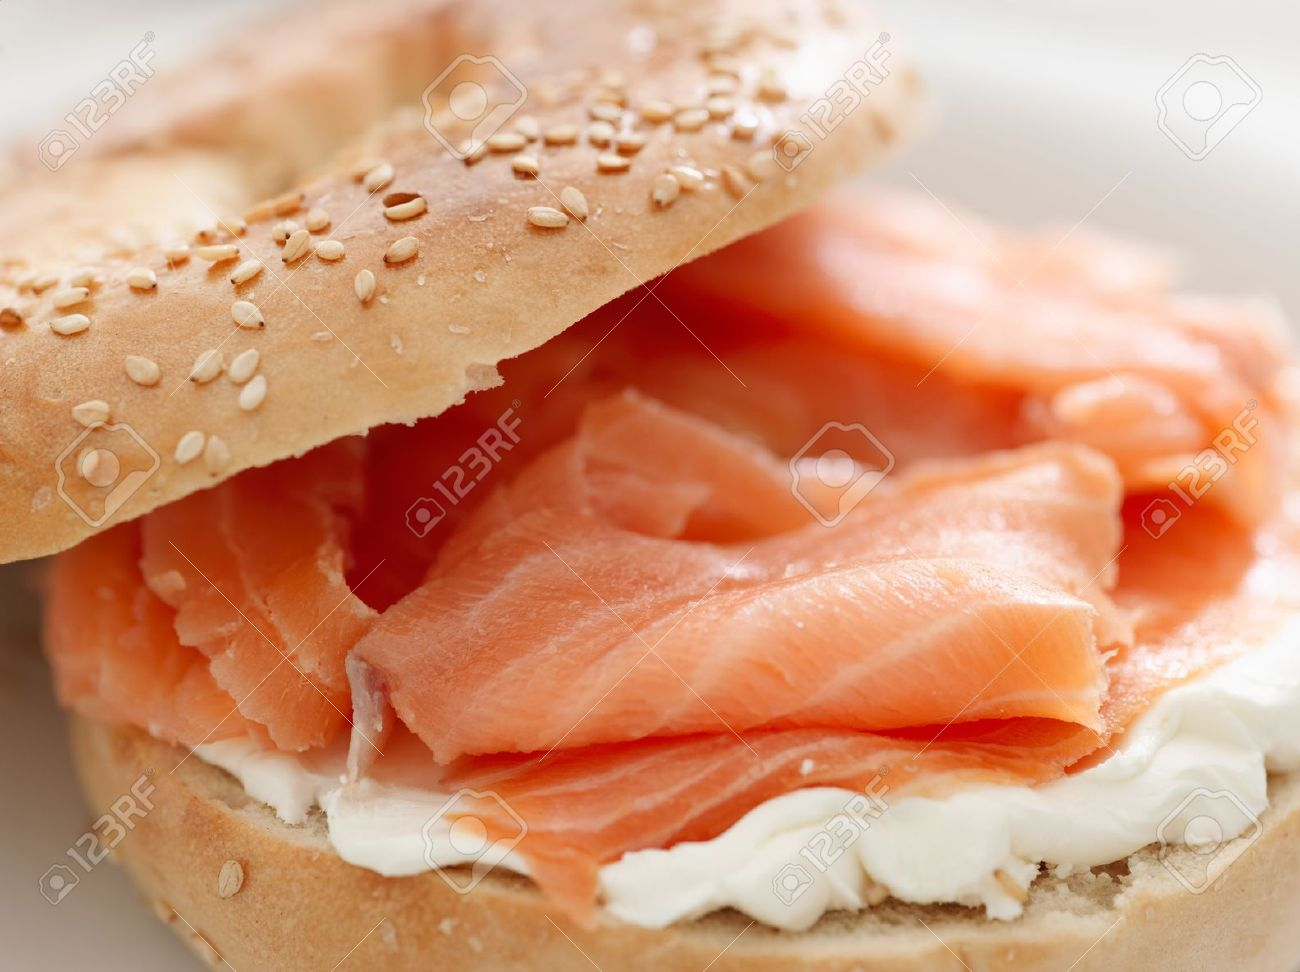 Bagel Images & Stock Pictures. Royalty Free Bagel Photos And Stock.